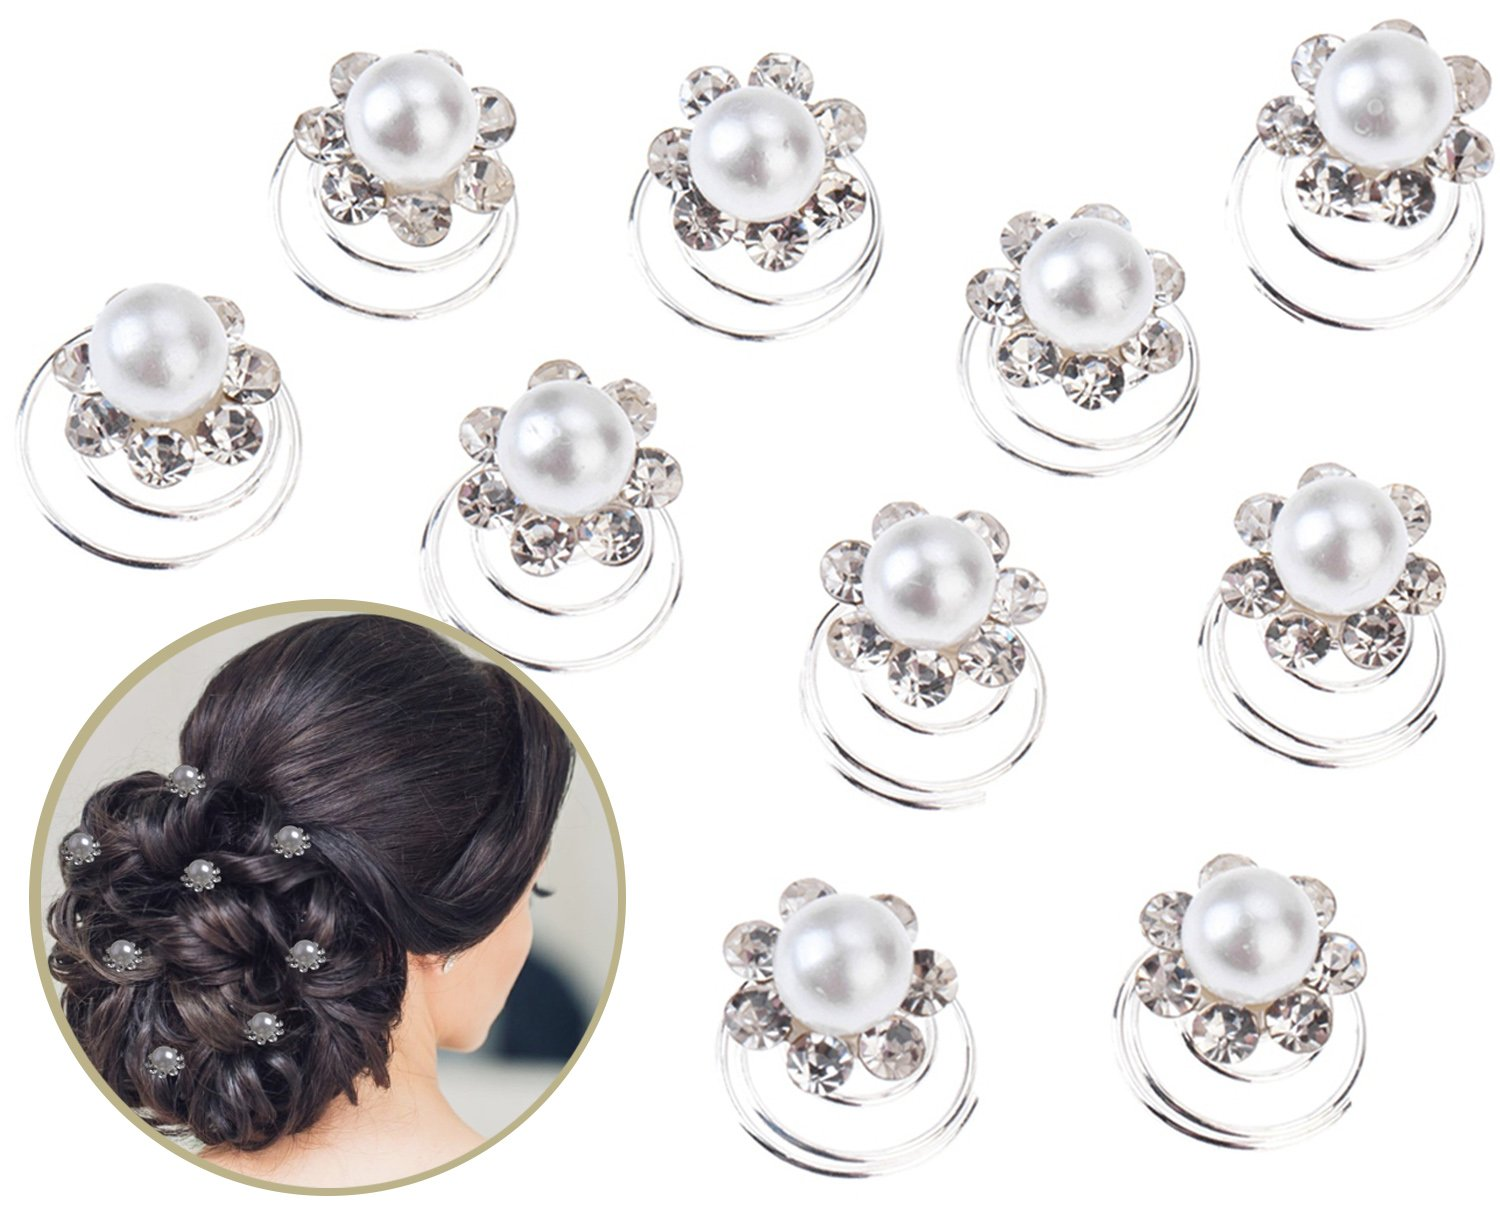 Fabulous Set of 10pcs Best Quality Silver Coloured Iron Spirals Hair Pins / Slides / Twists / Coils / Curlies / Wedding Brides Hairstyles Decorations With White Pearls And Clear Rhinestones Crystals Gemstones Flowers Shapes By VAGA®